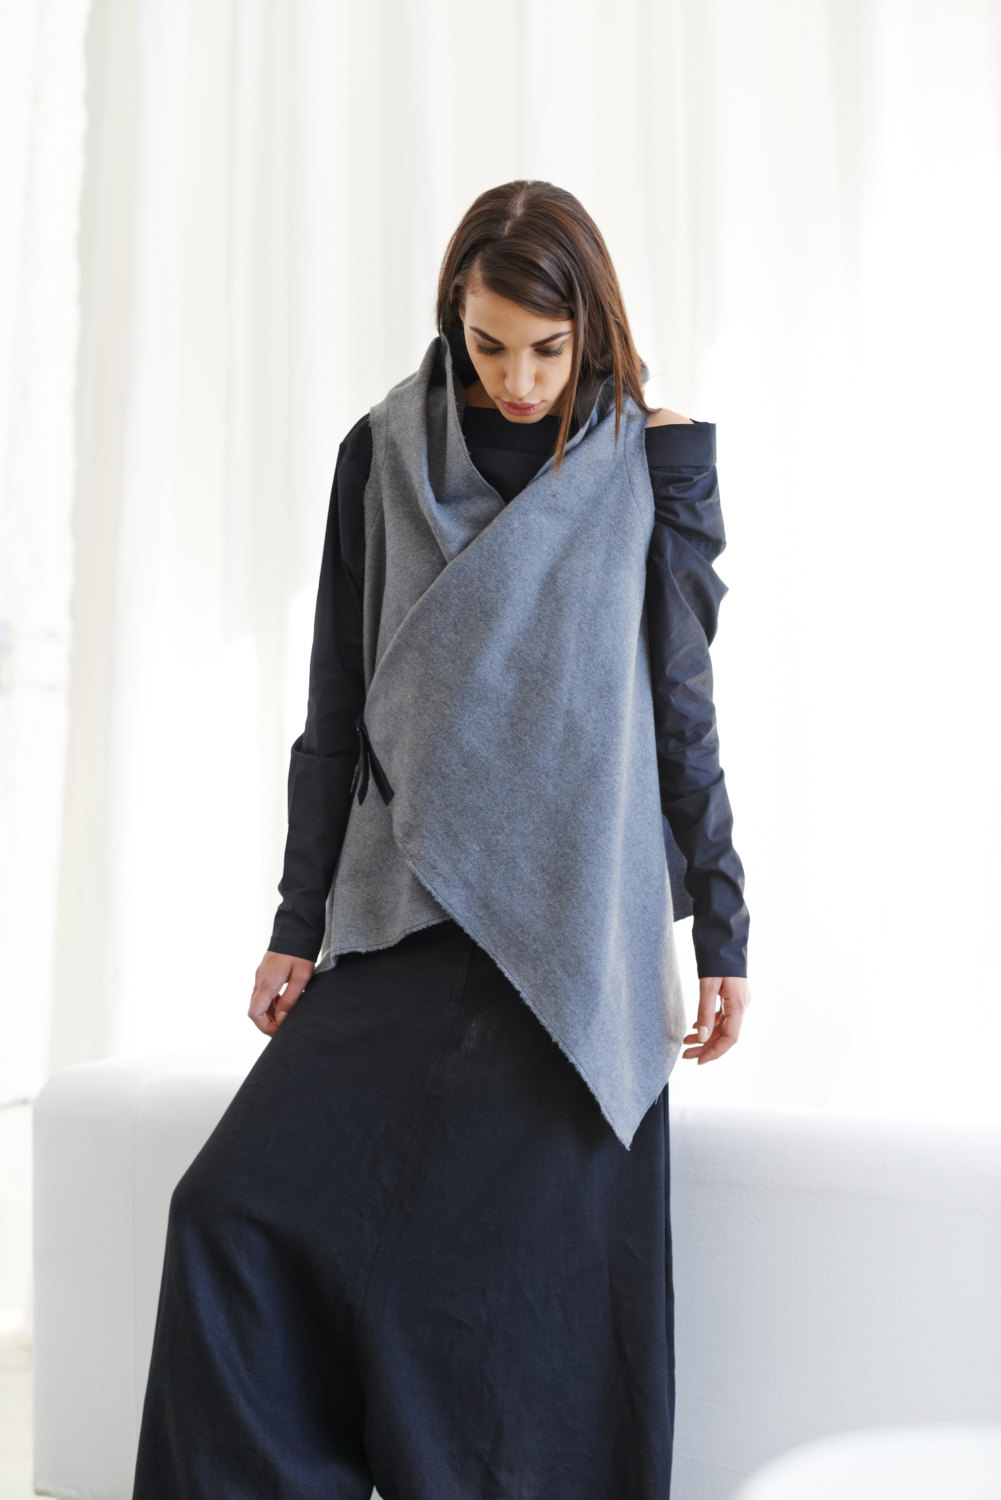 Arya Sense Kasha Sleeveless Coat / Soft Gray Wool Overcoat / Asymmetrical Kasha Vest With Premium Leather Black Strap